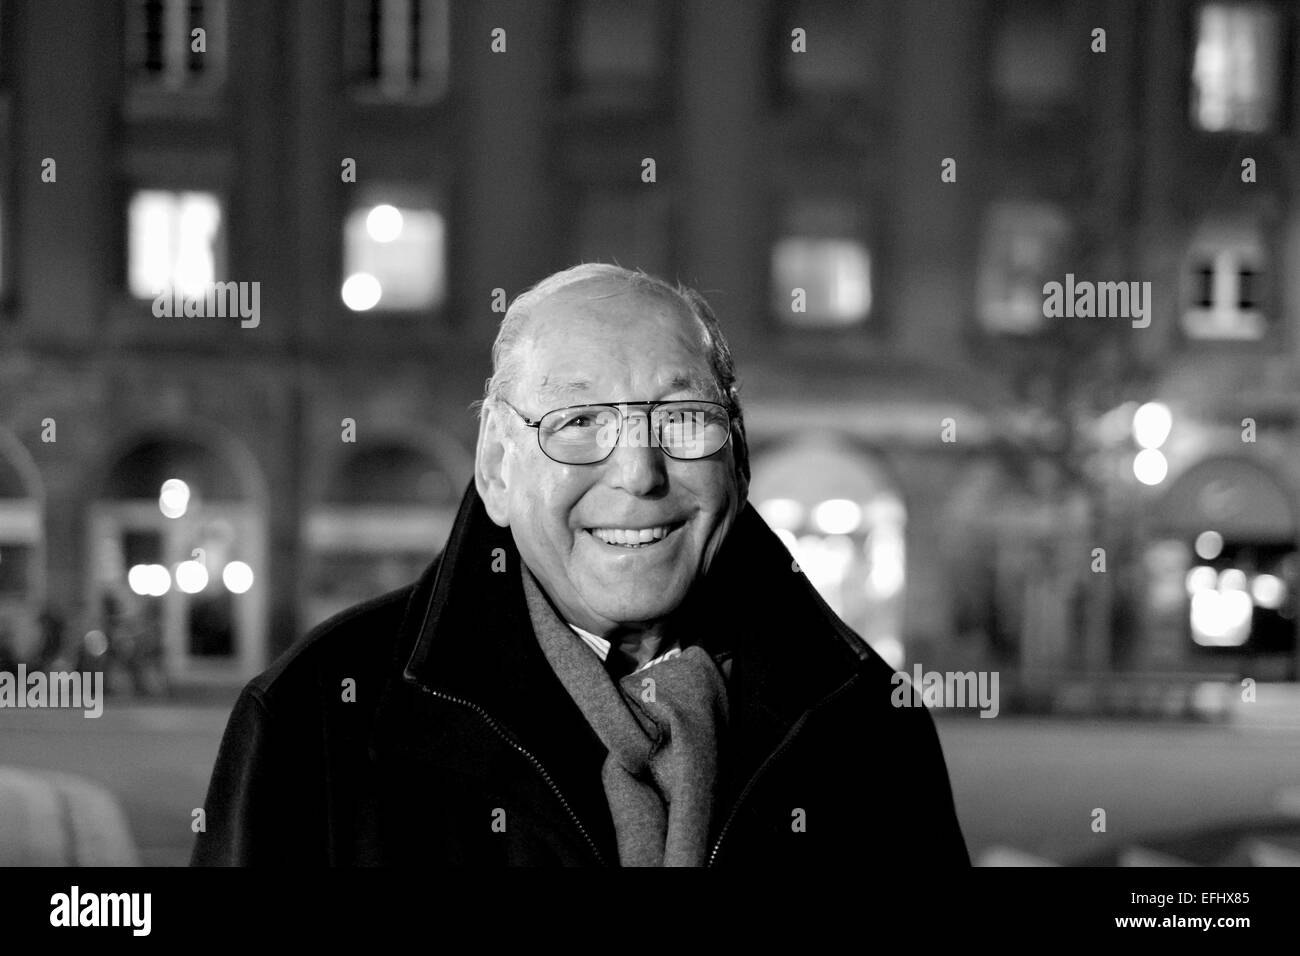 Black and white portrait of a smiling elderly man 80s at night - Stock Image